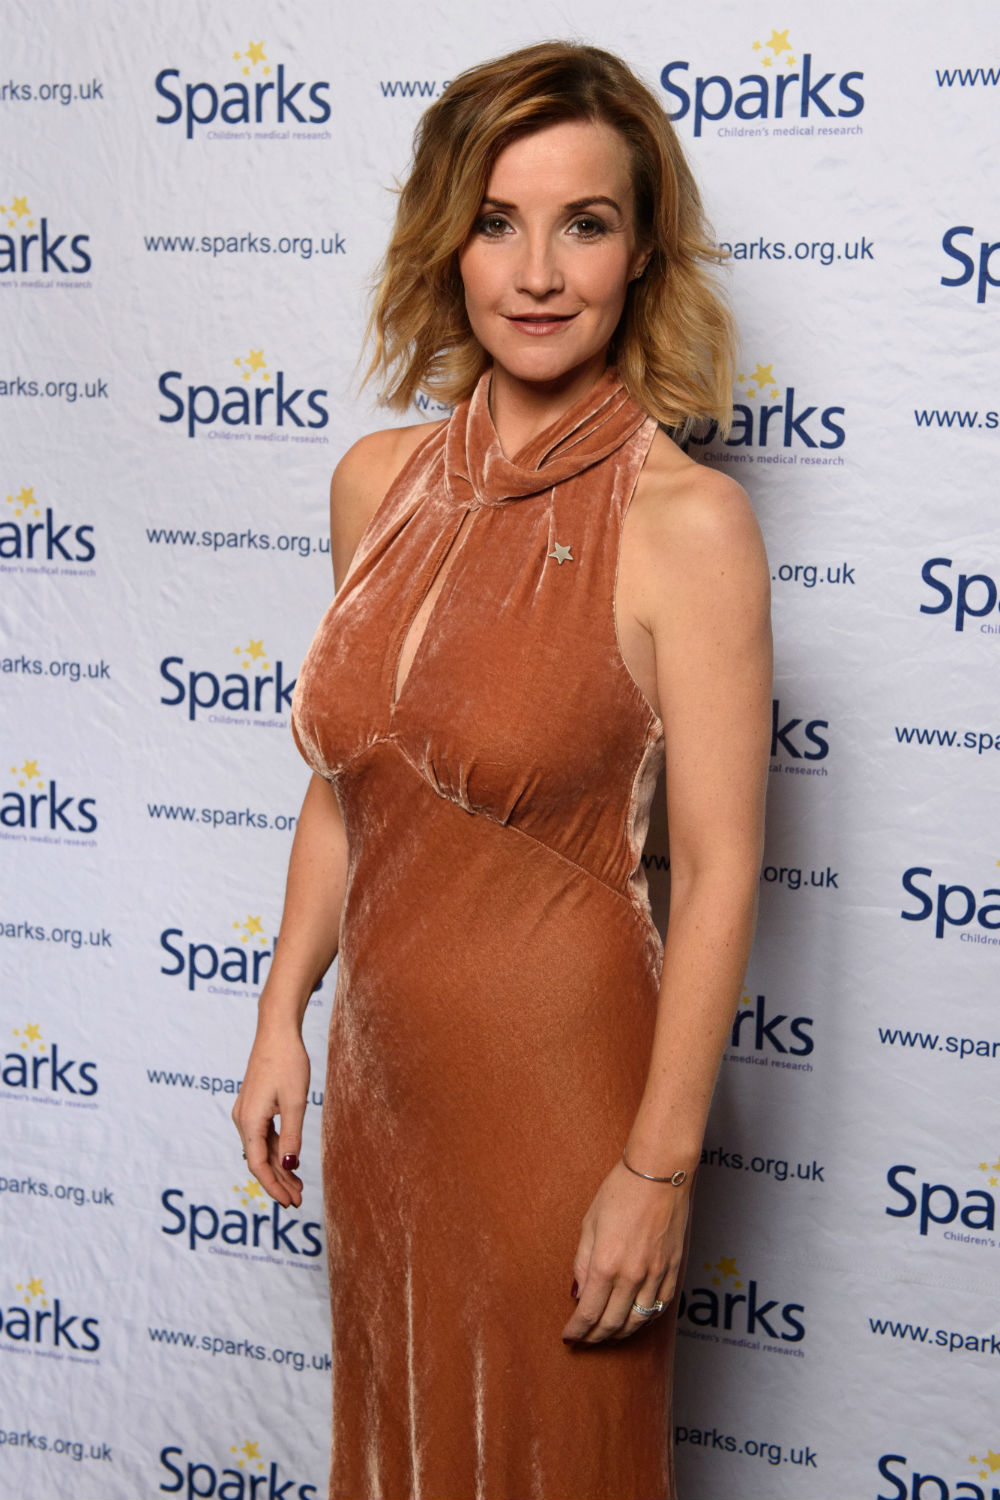 Photos Helen Skelton nude photos 2019